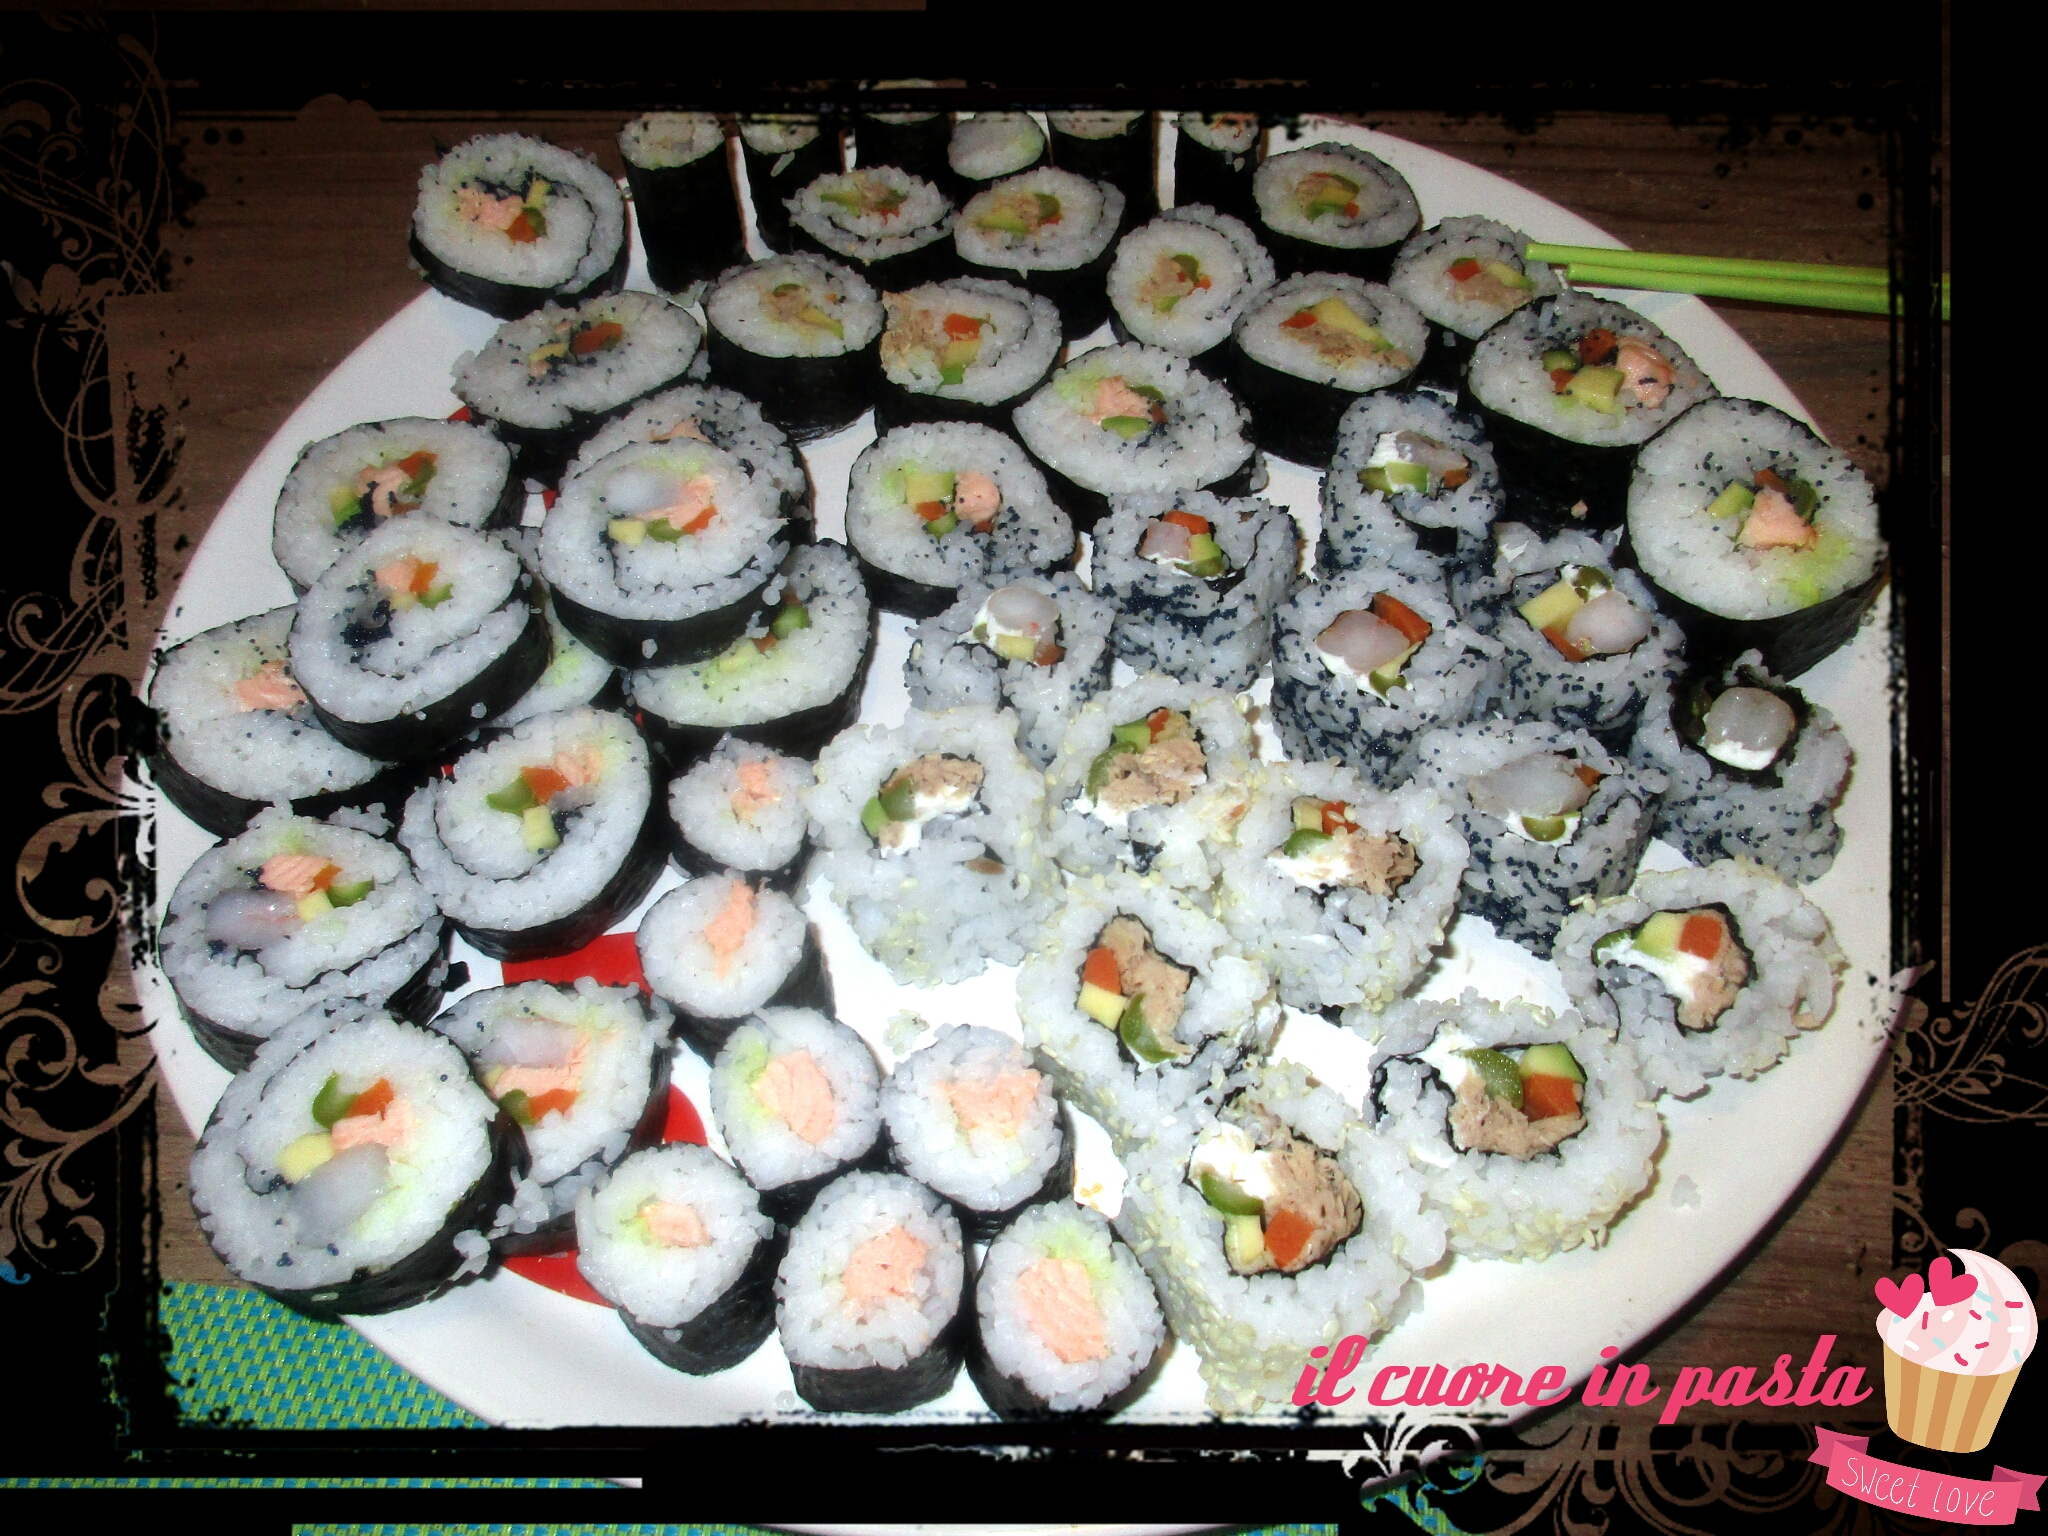 Cucina Giapponese Pesce Cotto Sushi Cotto A Vapore